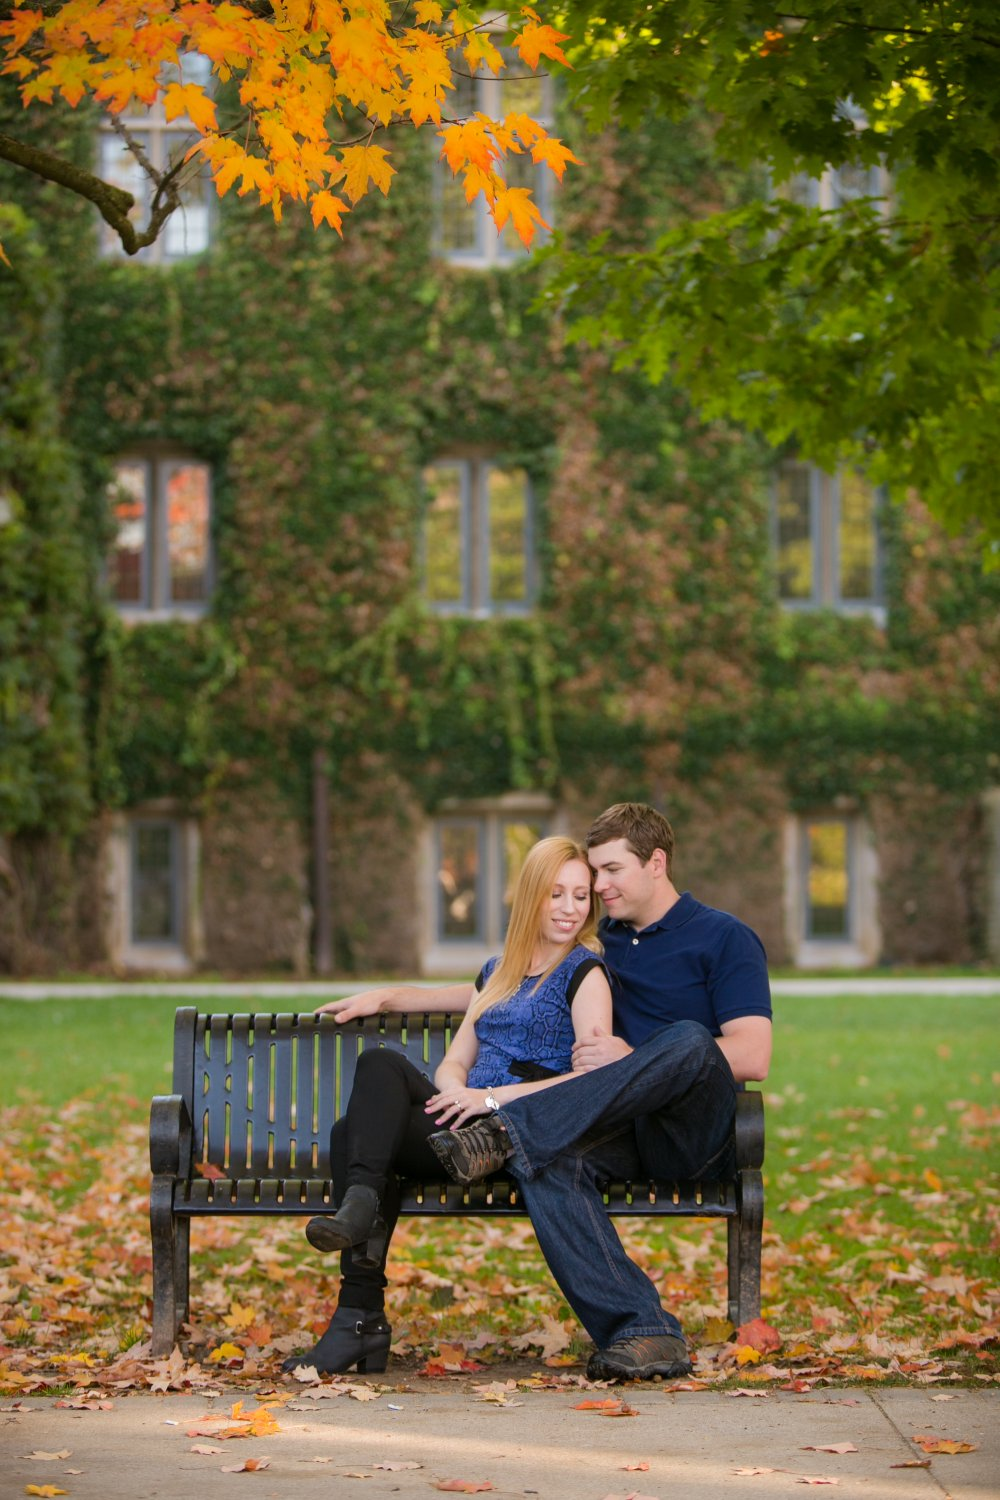 JF Hannigan Photography Engagement Session: Christine and Mark: a macmaster morning 1